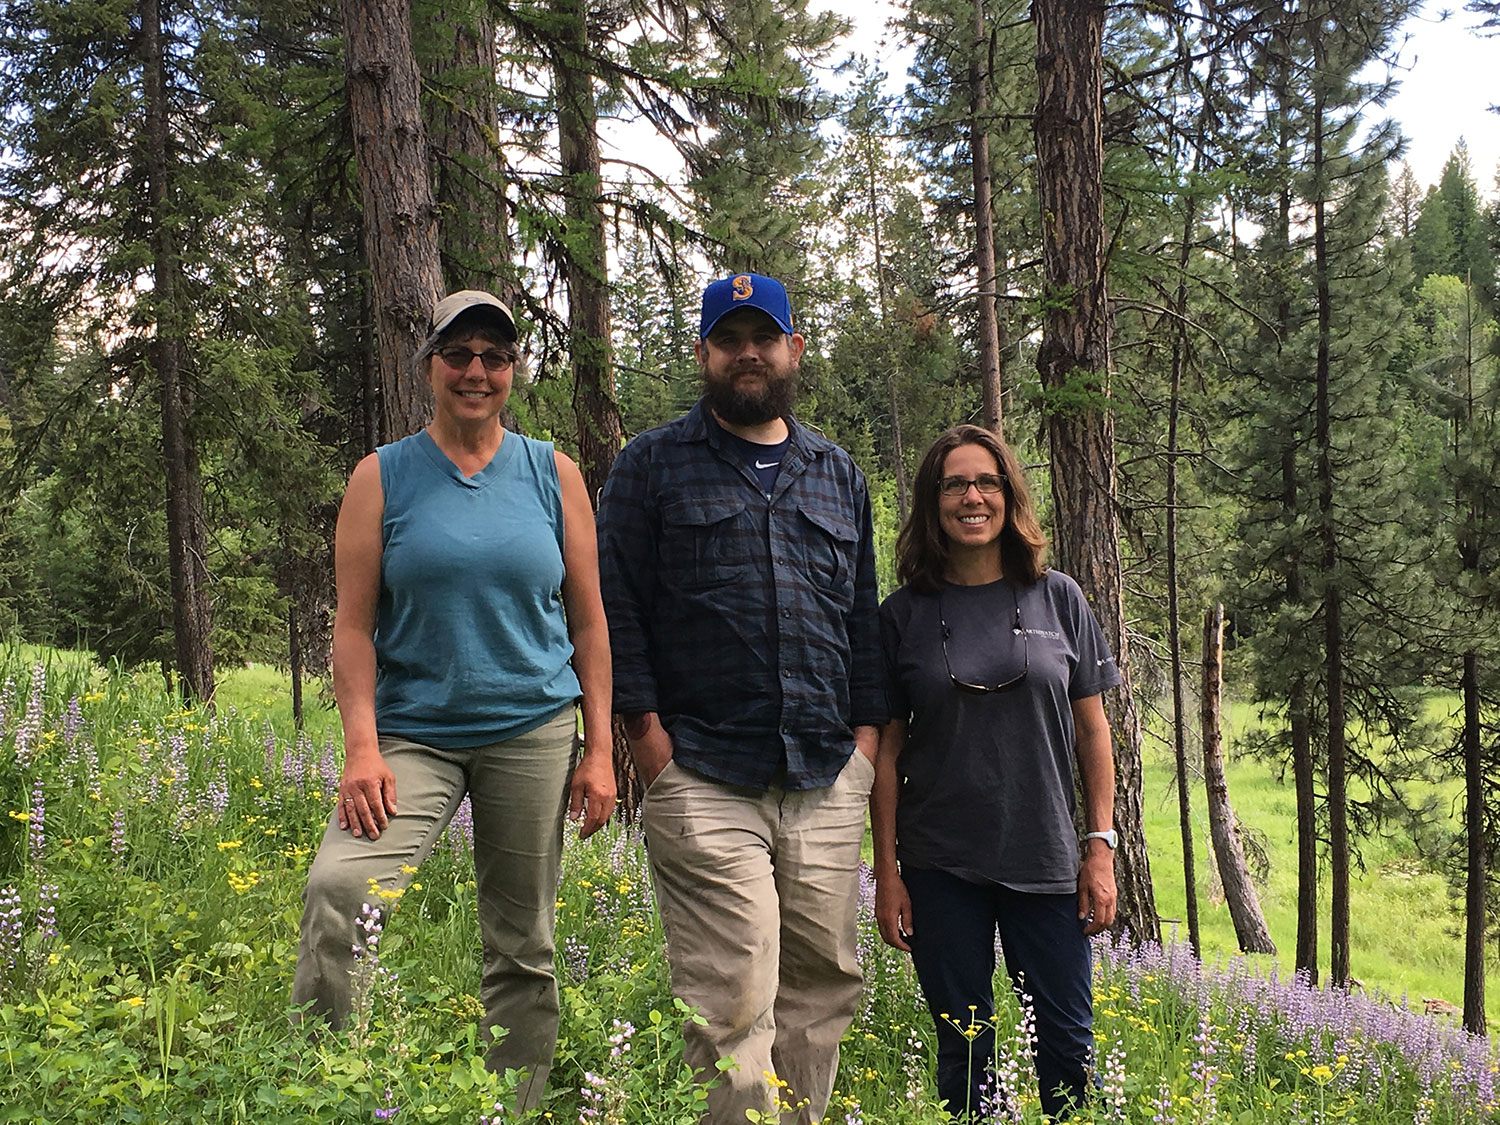 Principal Investigator Maria Mantas with volunteers Kyle Stoddard and Hannah Webber, standing on a lupine-filled slope behind the Old Condon Ranger Station, which provides an awesome lodging opportunity that some of this year's volunteer teams will enjoy. Photo: Rob Rich